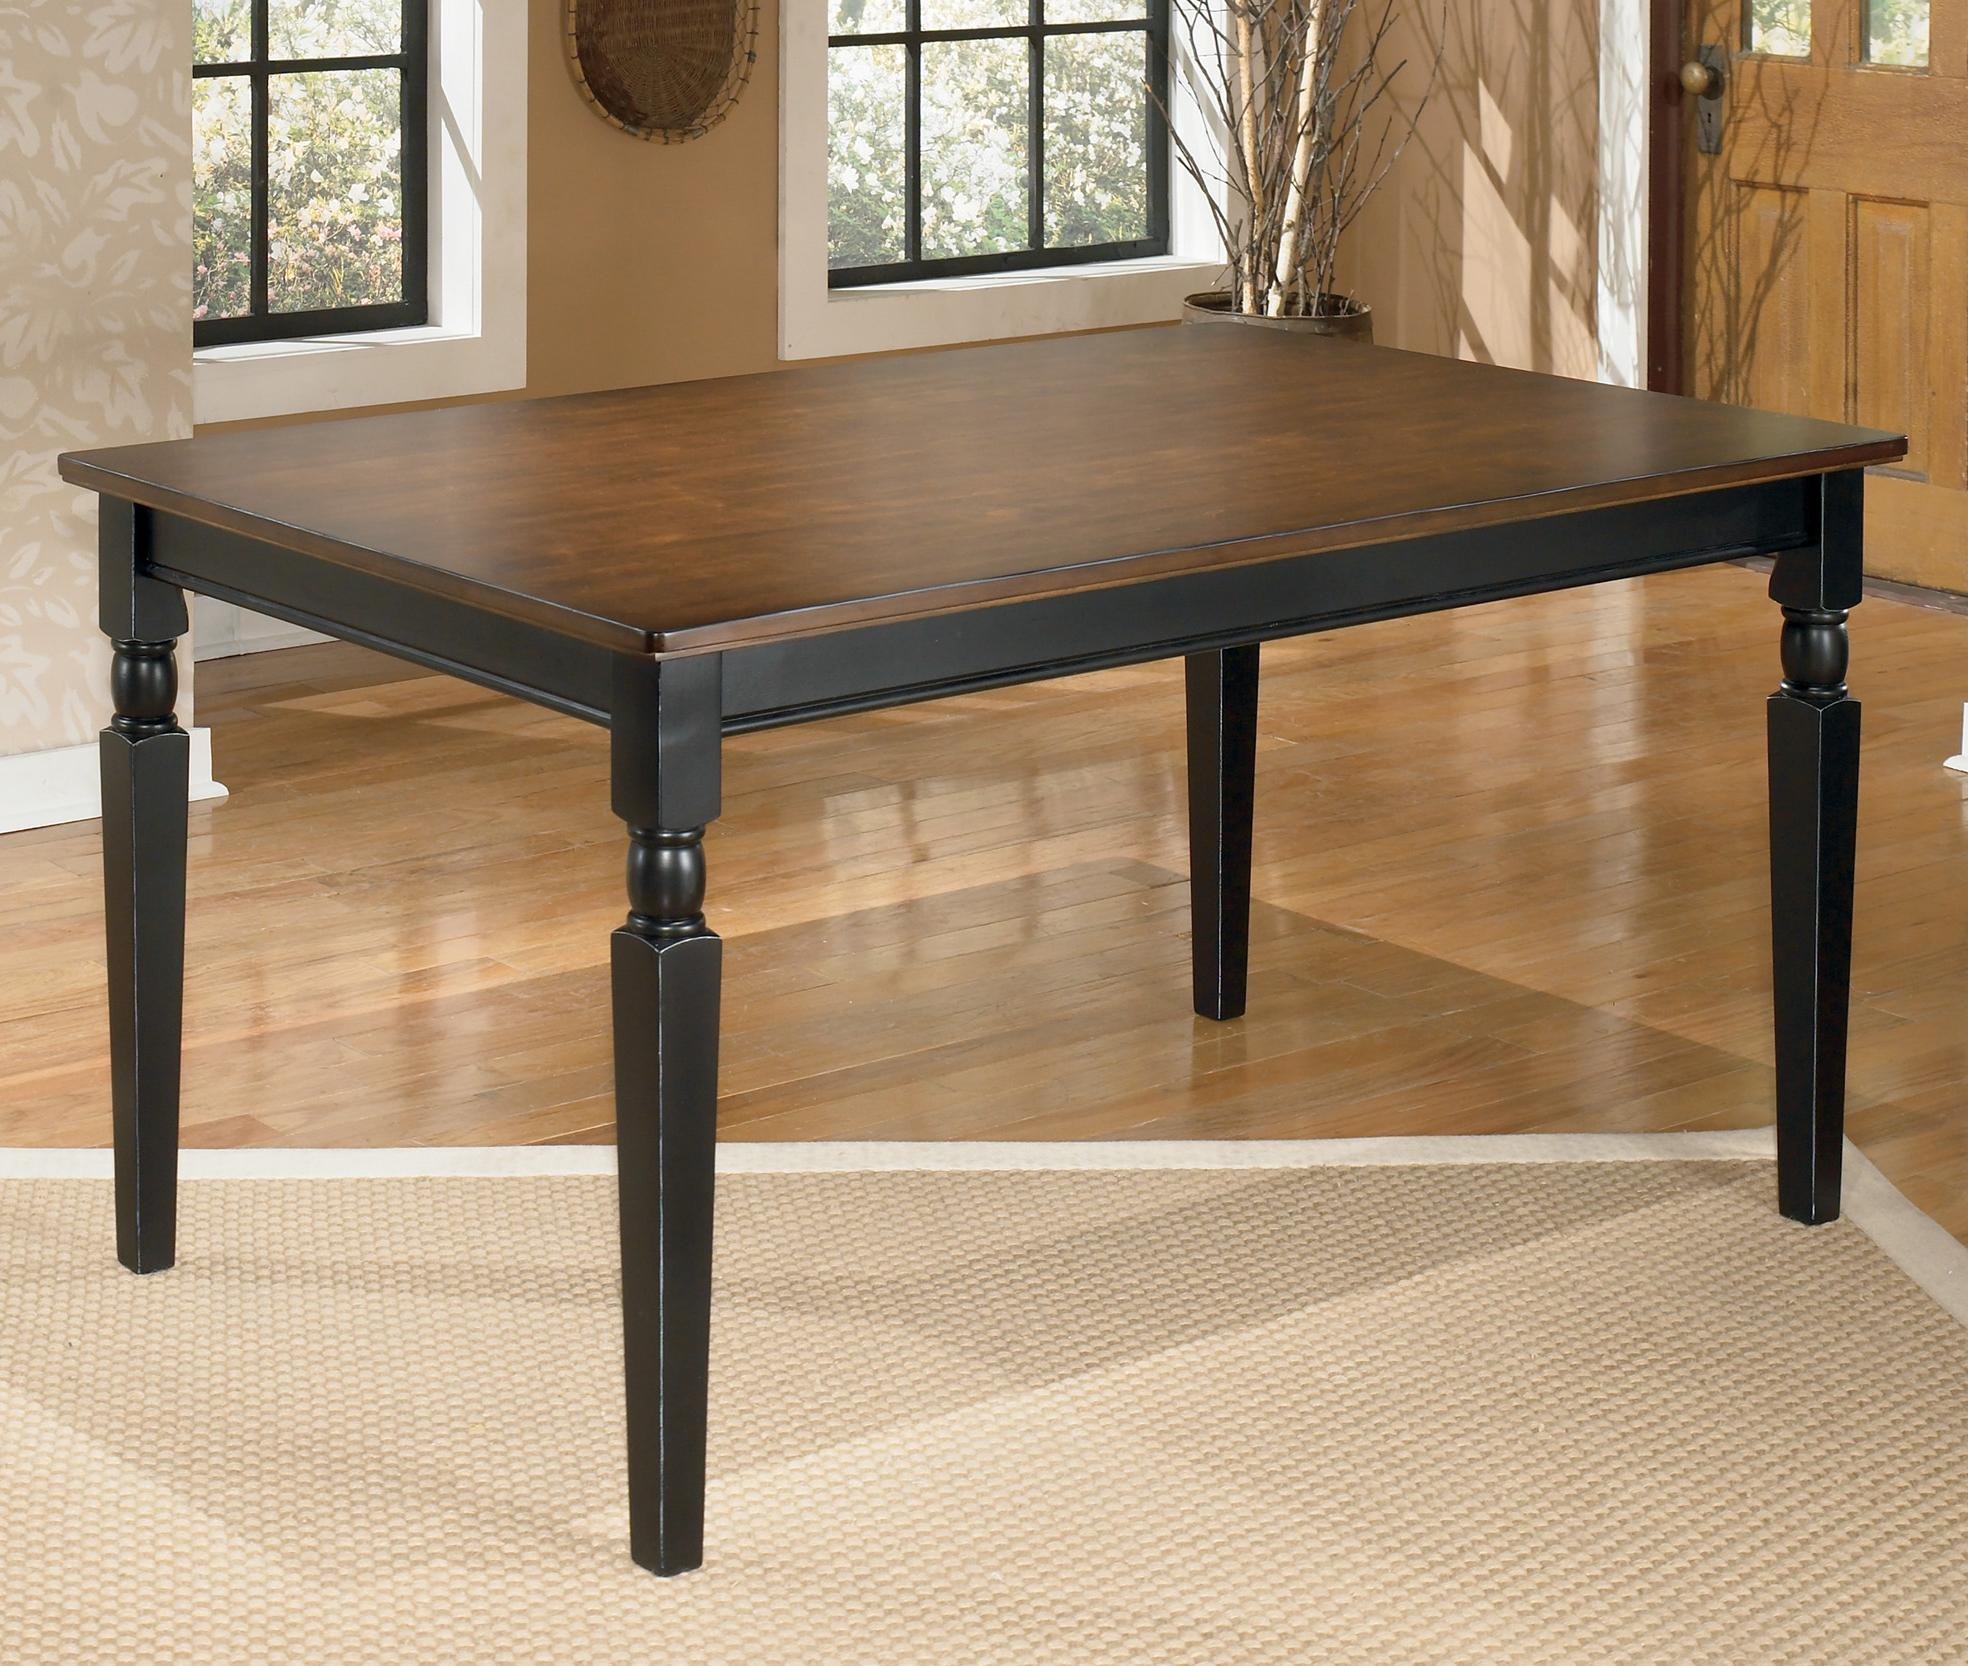 Signature Design by Ashley Owingsville Rectangular Dining Room Table - Item Number: D580-25